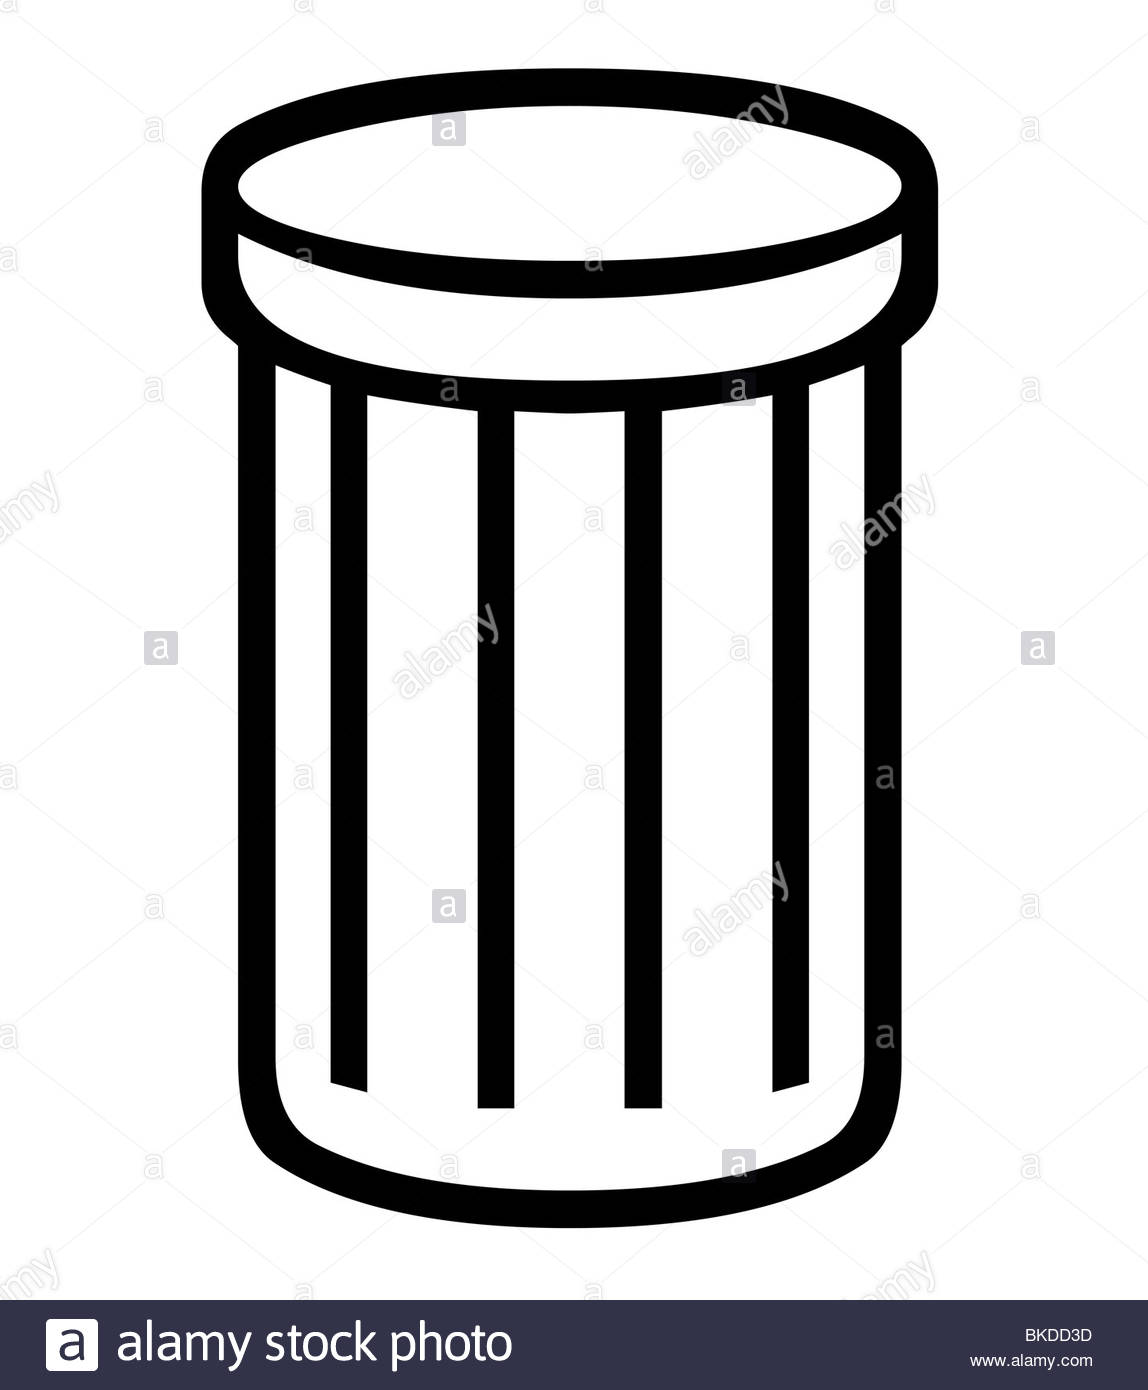 1148x1390 Trash Can Or Rubbish Bin Silhouette, Isolated On White Background